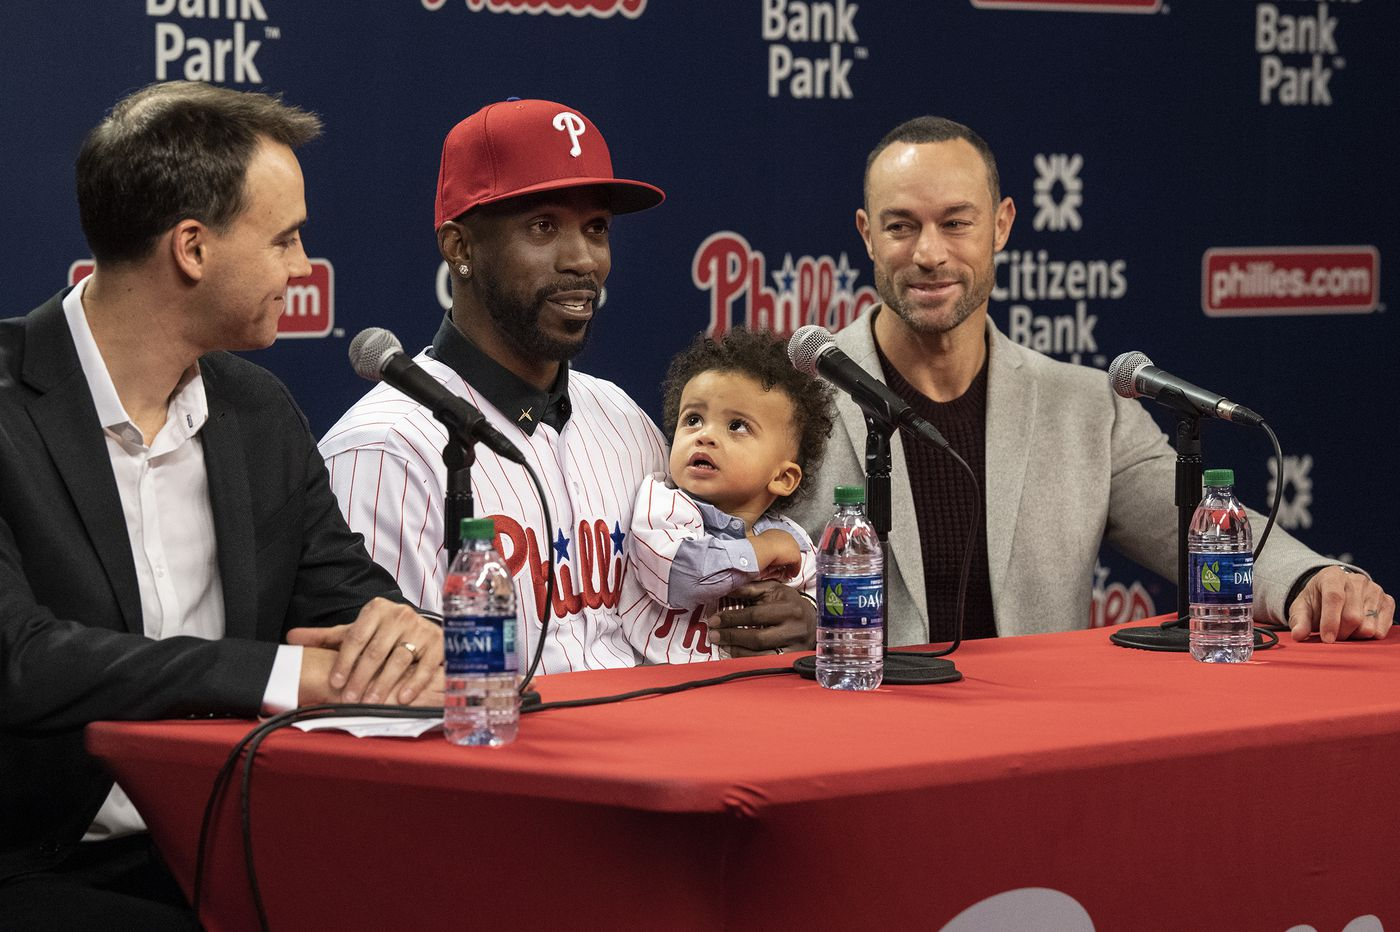 Andrew McCutchen: 'I understand what I'm capable of doing' with Phillies